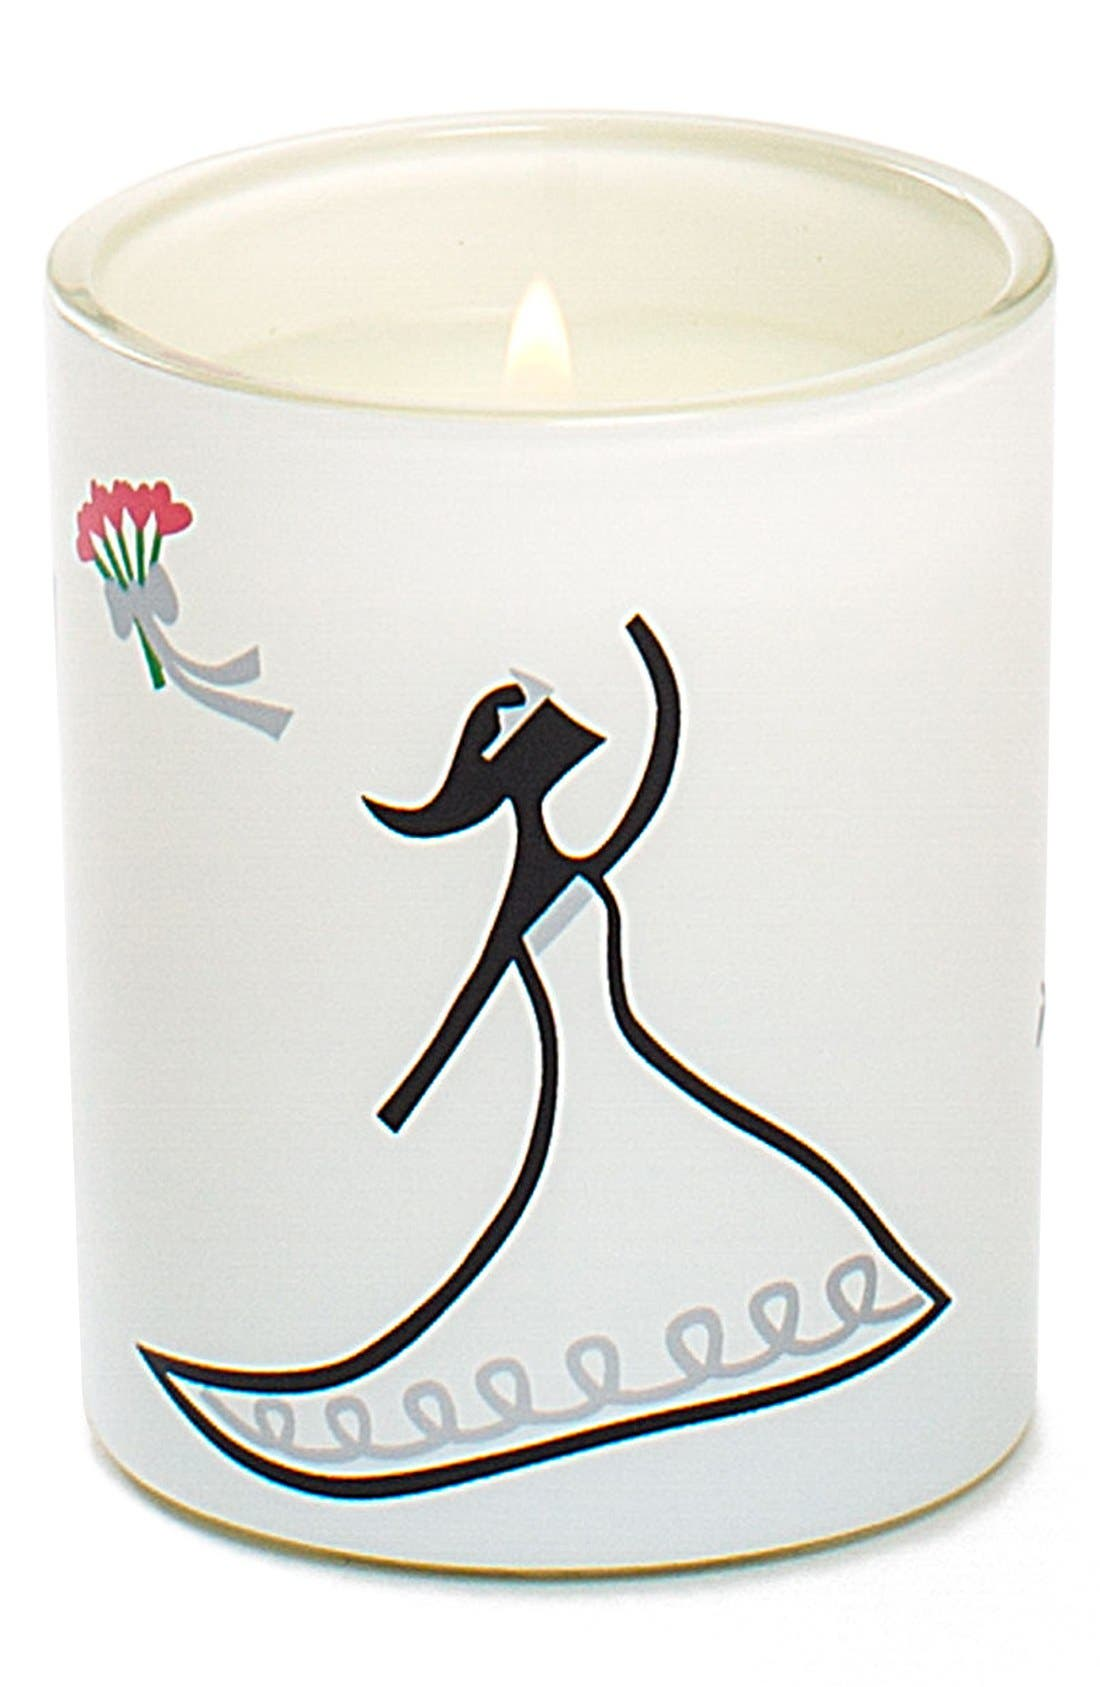 'Toss' Mini Scented Candle,                             Main thumbnail 1, color,                             000